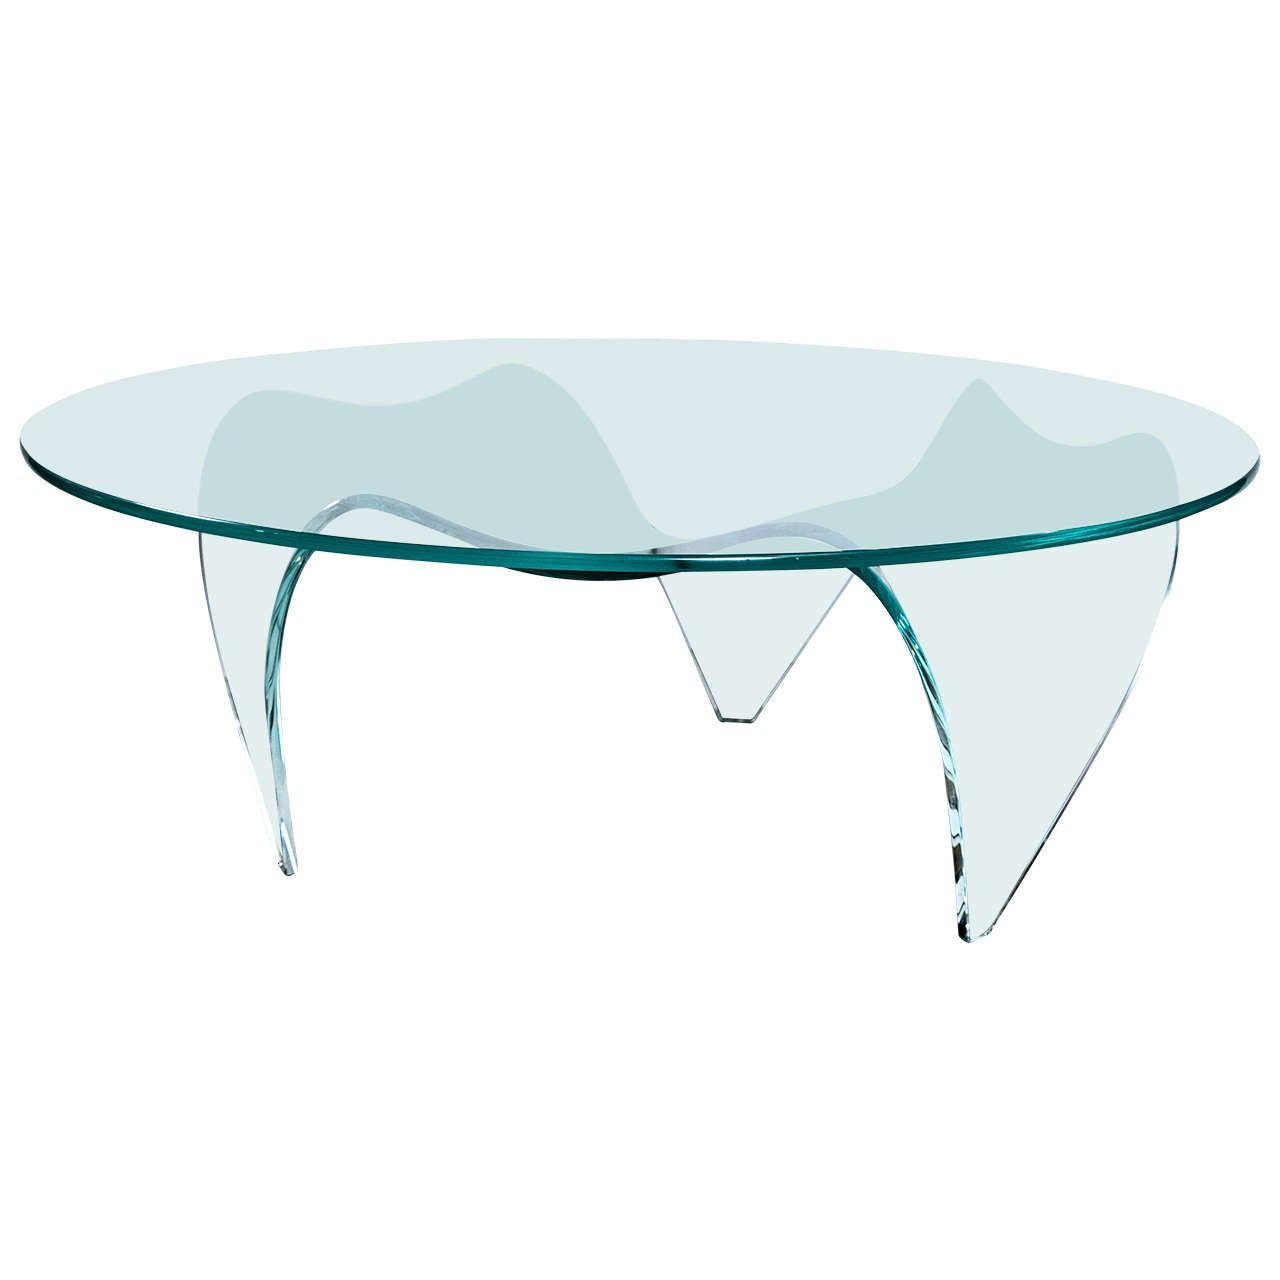 Pace round glass top and glass base coffee table for sale for Round glass coffee tables for sale